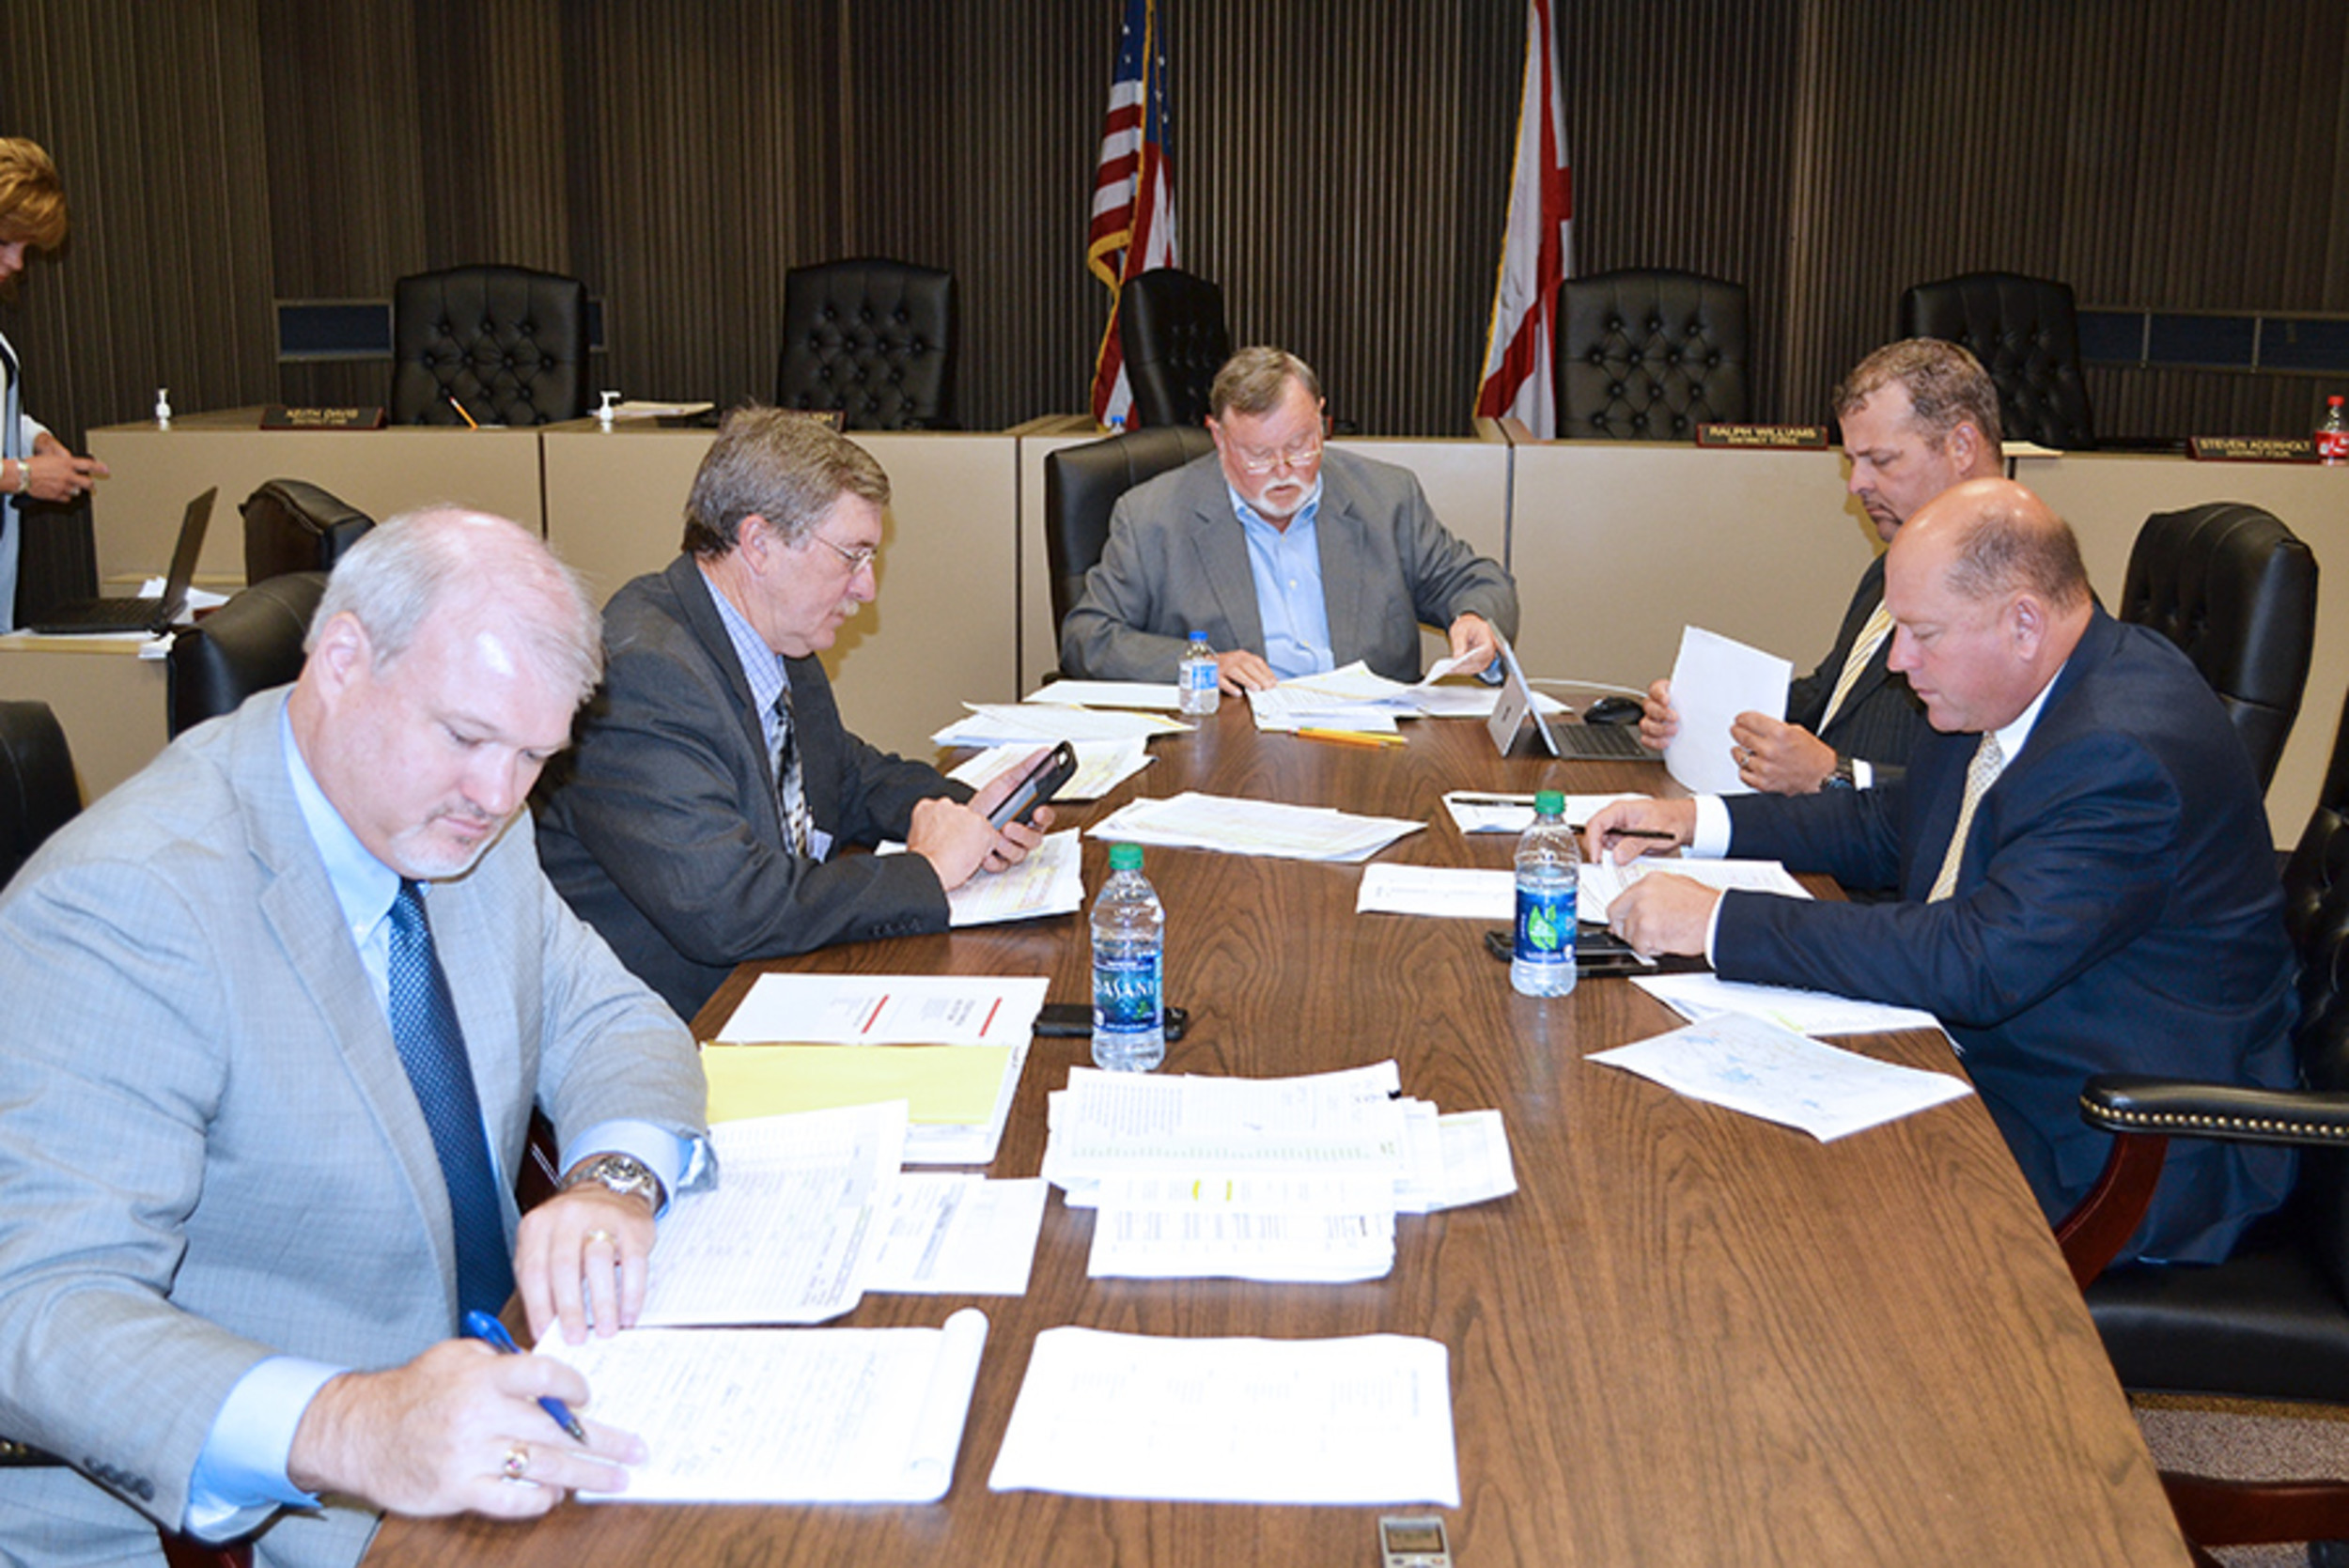 Members of the Walker County Commission are shown during a special work session Aug. 21 to discuss the financial difficulties facing the county. The work session followed a referendum that defeated a proposed one-cent sales tax.